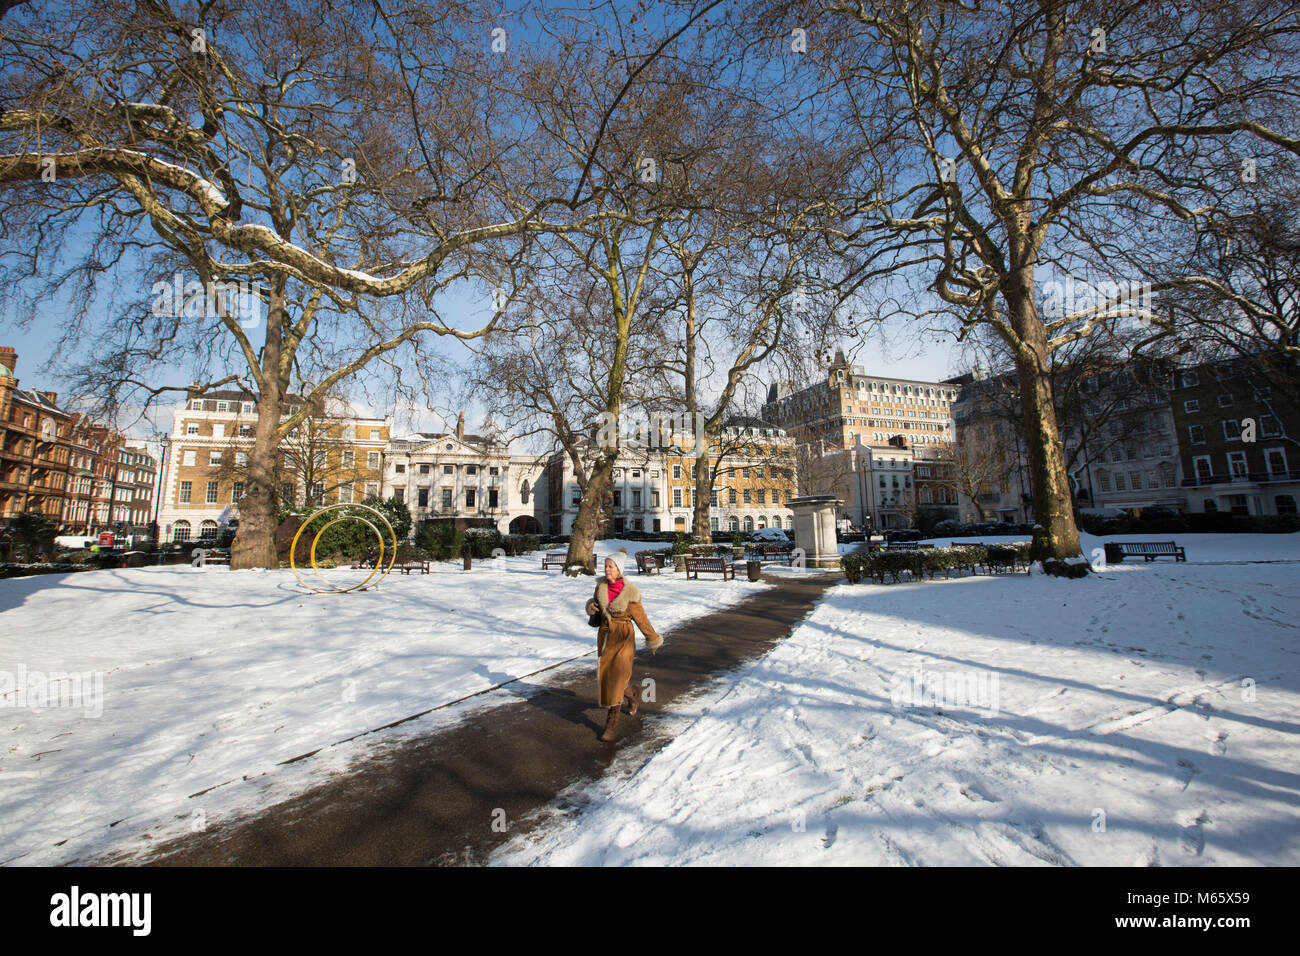 Snow covered Cavendish Square Gardens, as artic weather hits London. BRITAIN is being buffeted by icy Siberian winds - Stock Image